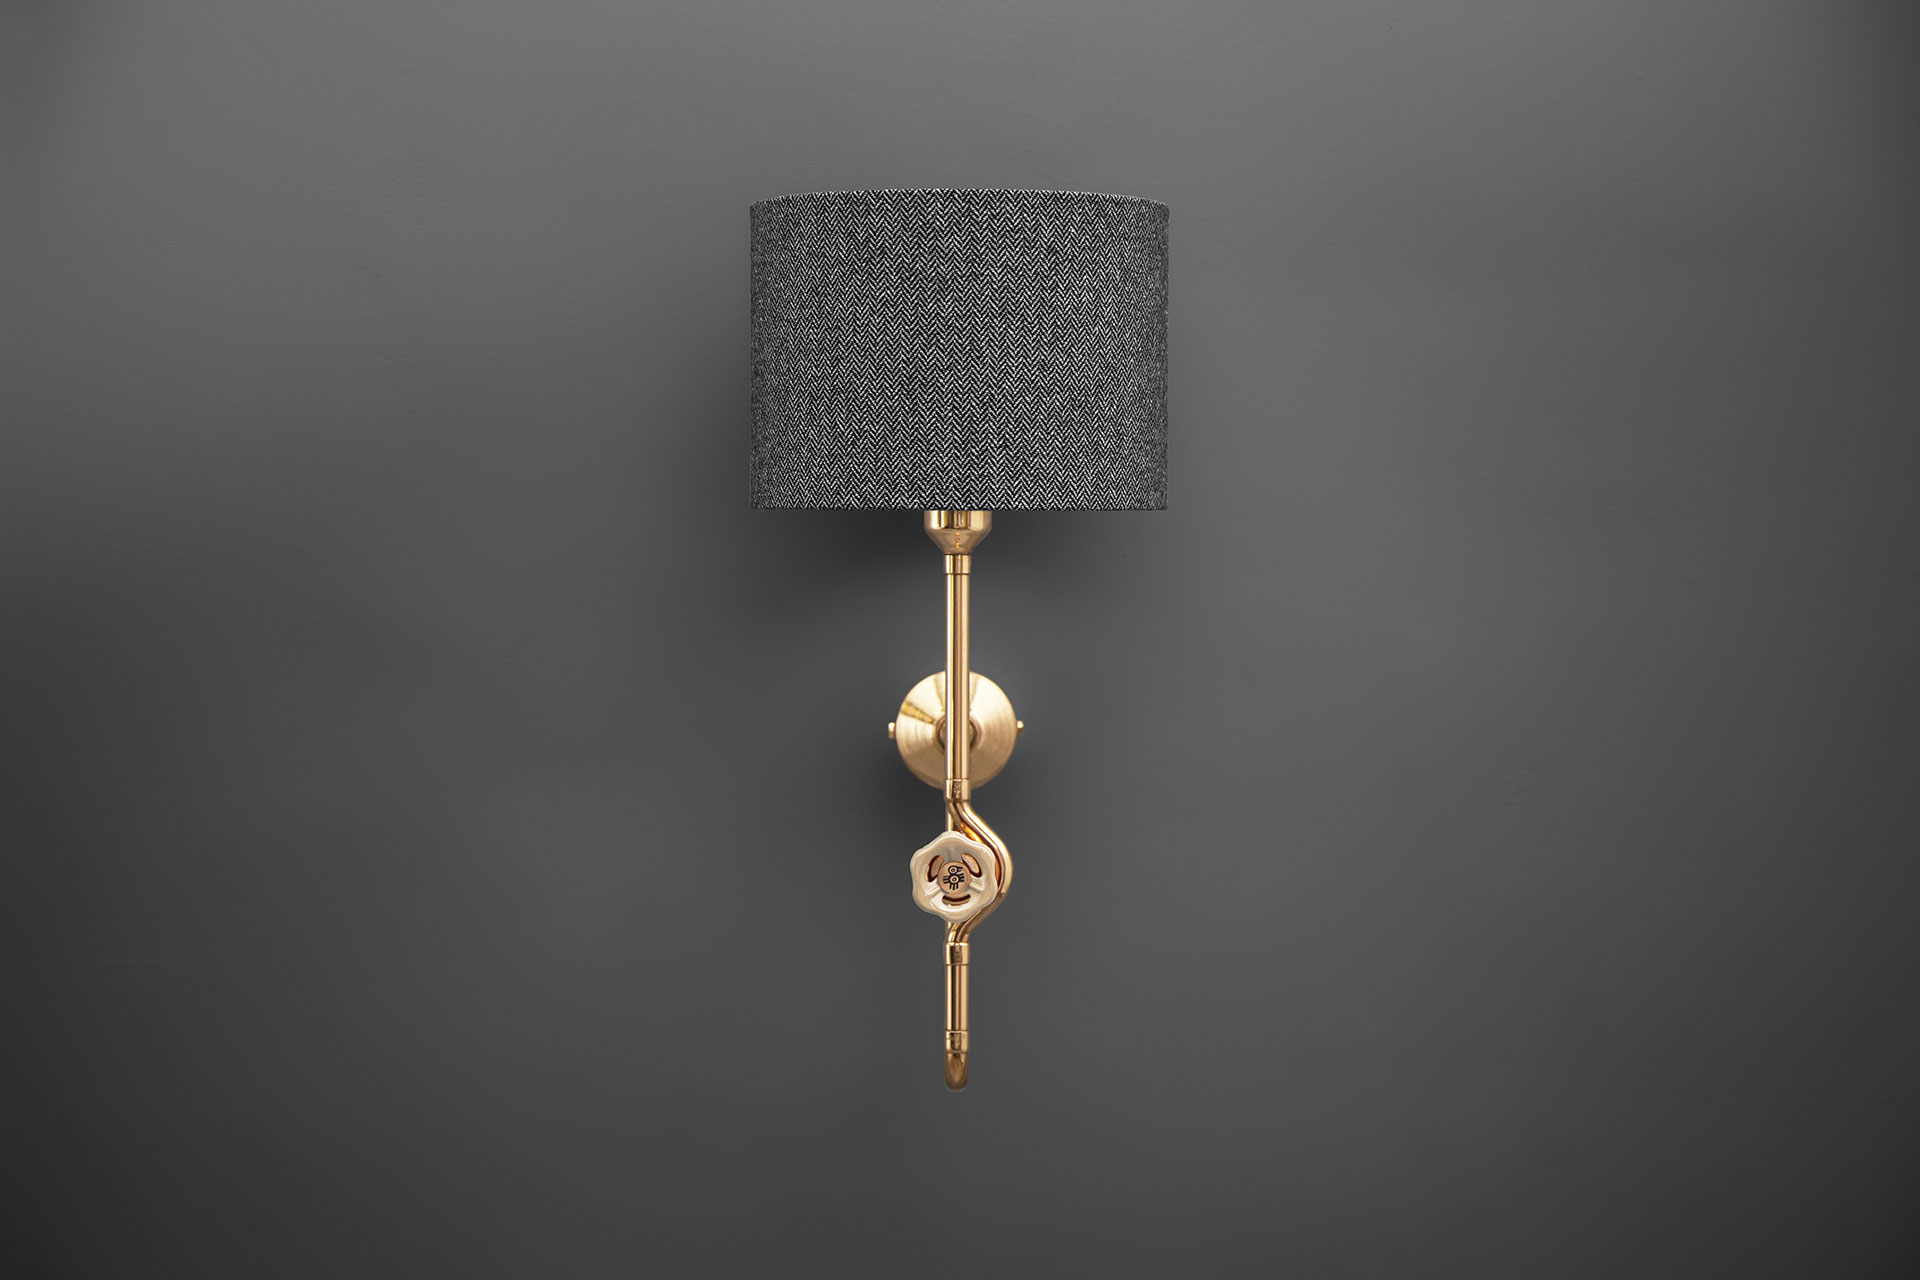 Designers sconce with tweed shade and knob dimmer